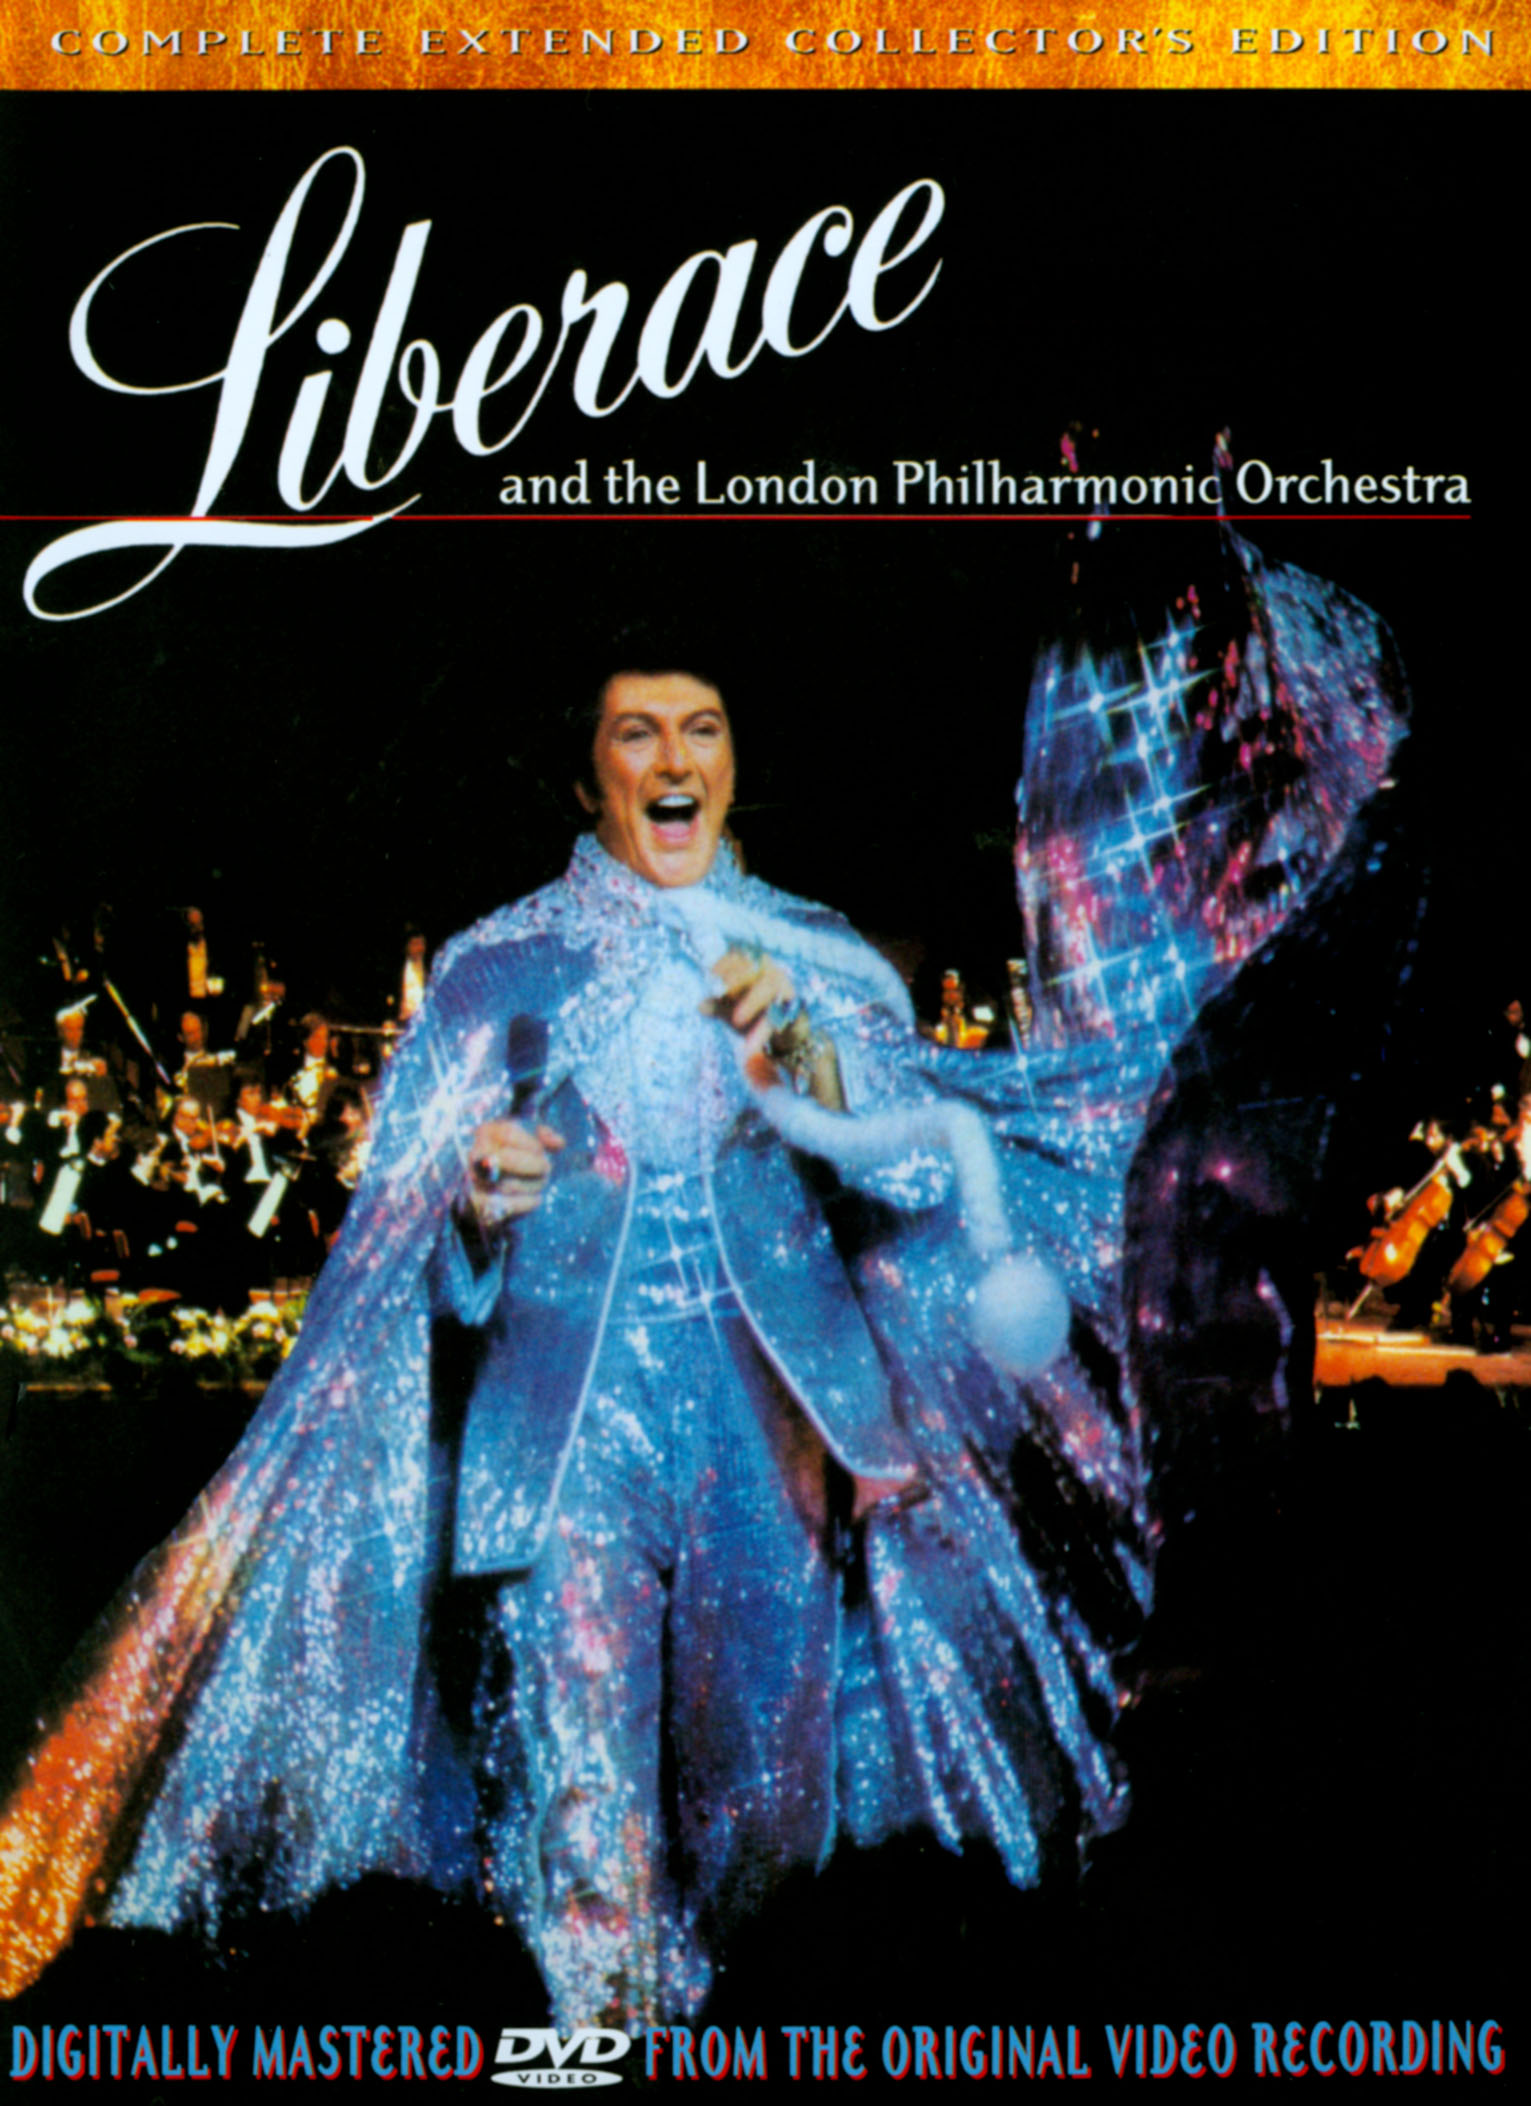 Liberace: Live with the London Philharmonic